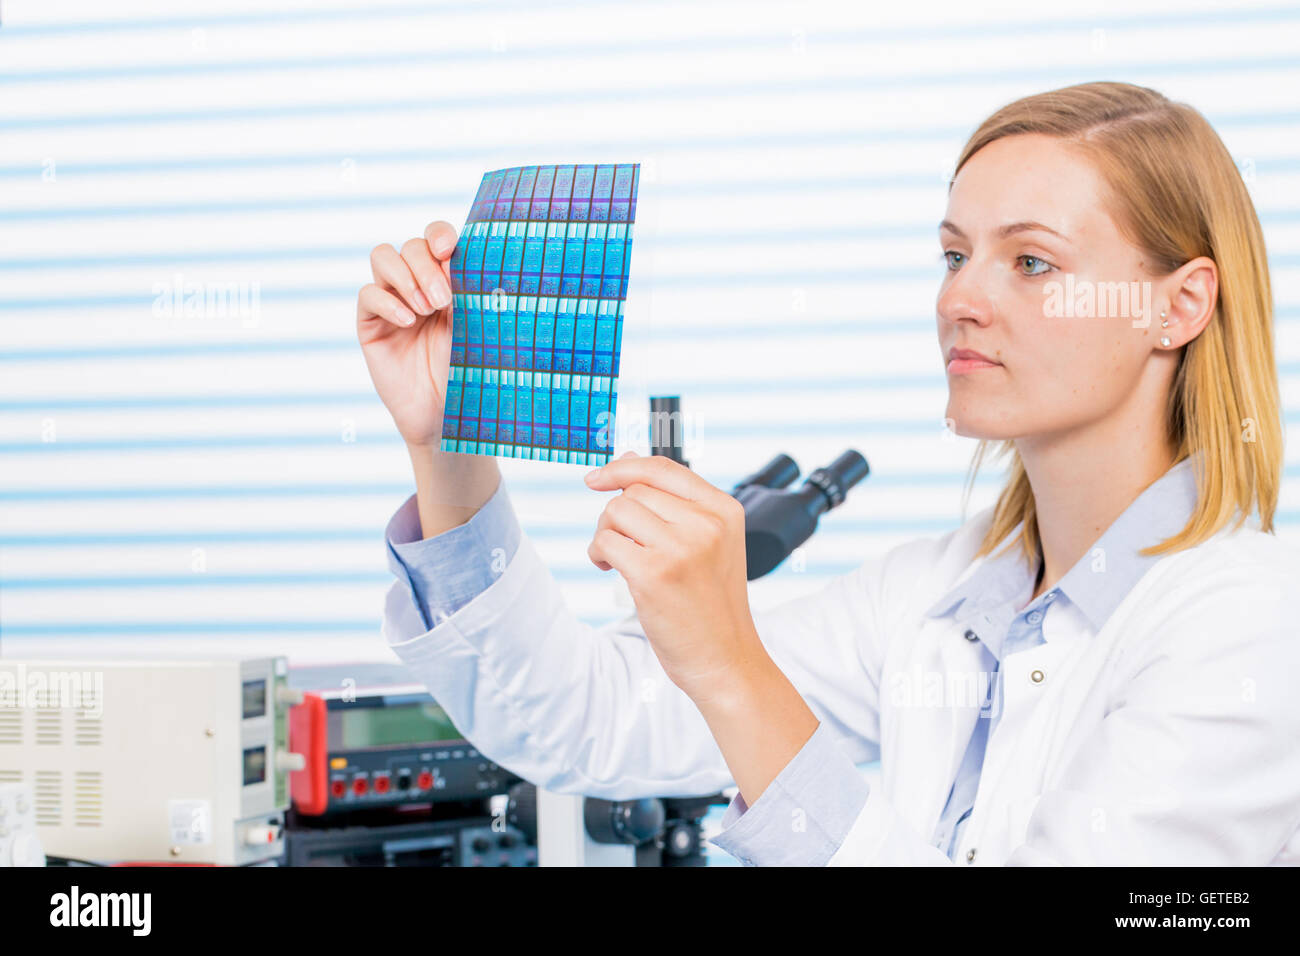 Testing negative for microchip manufacturing - Stock Image